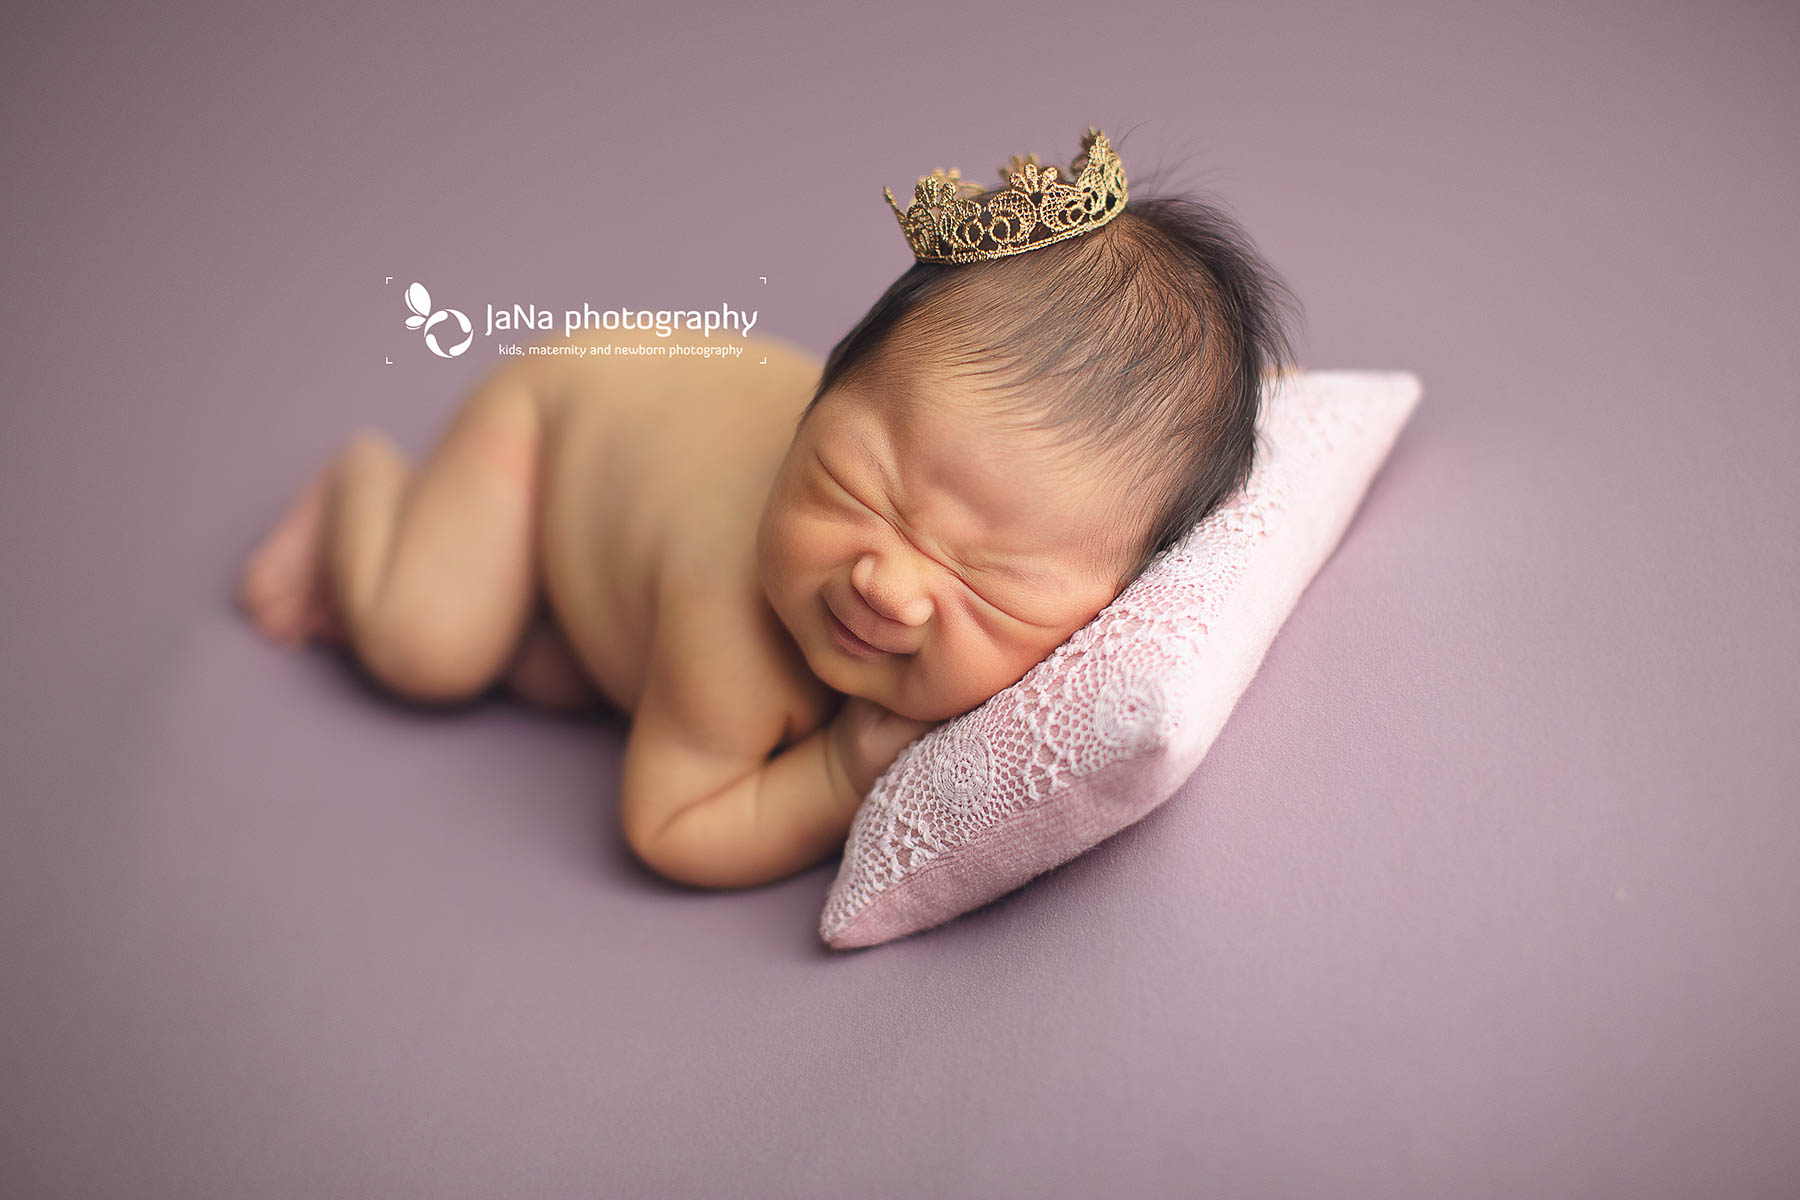 newborn photography in Vancouver-jana